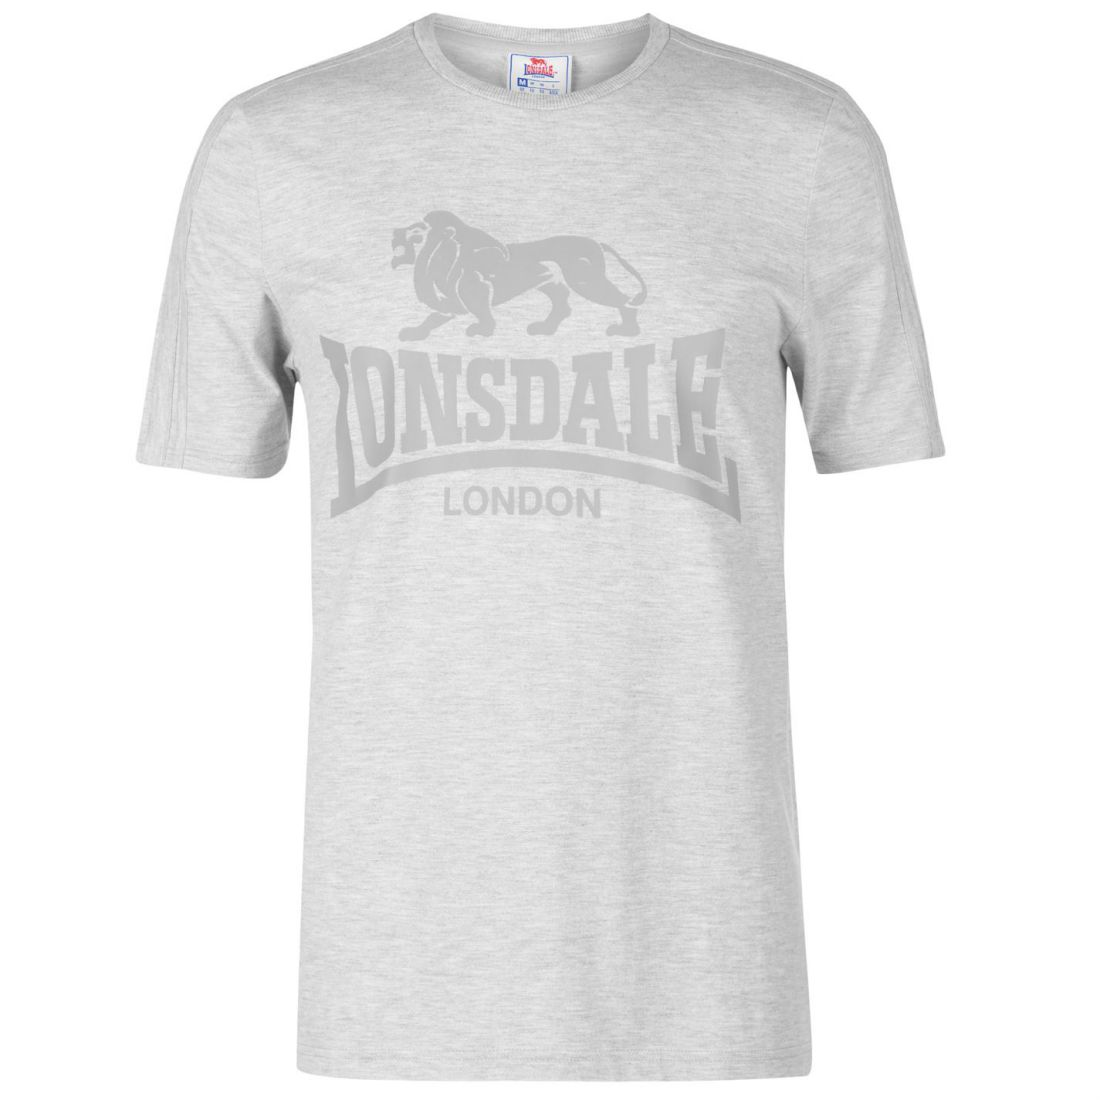 8297ae142c0dd9 Lonsdale Mens Large Logo T Shirt Crew Neck Tee Top Short Sleeve ...